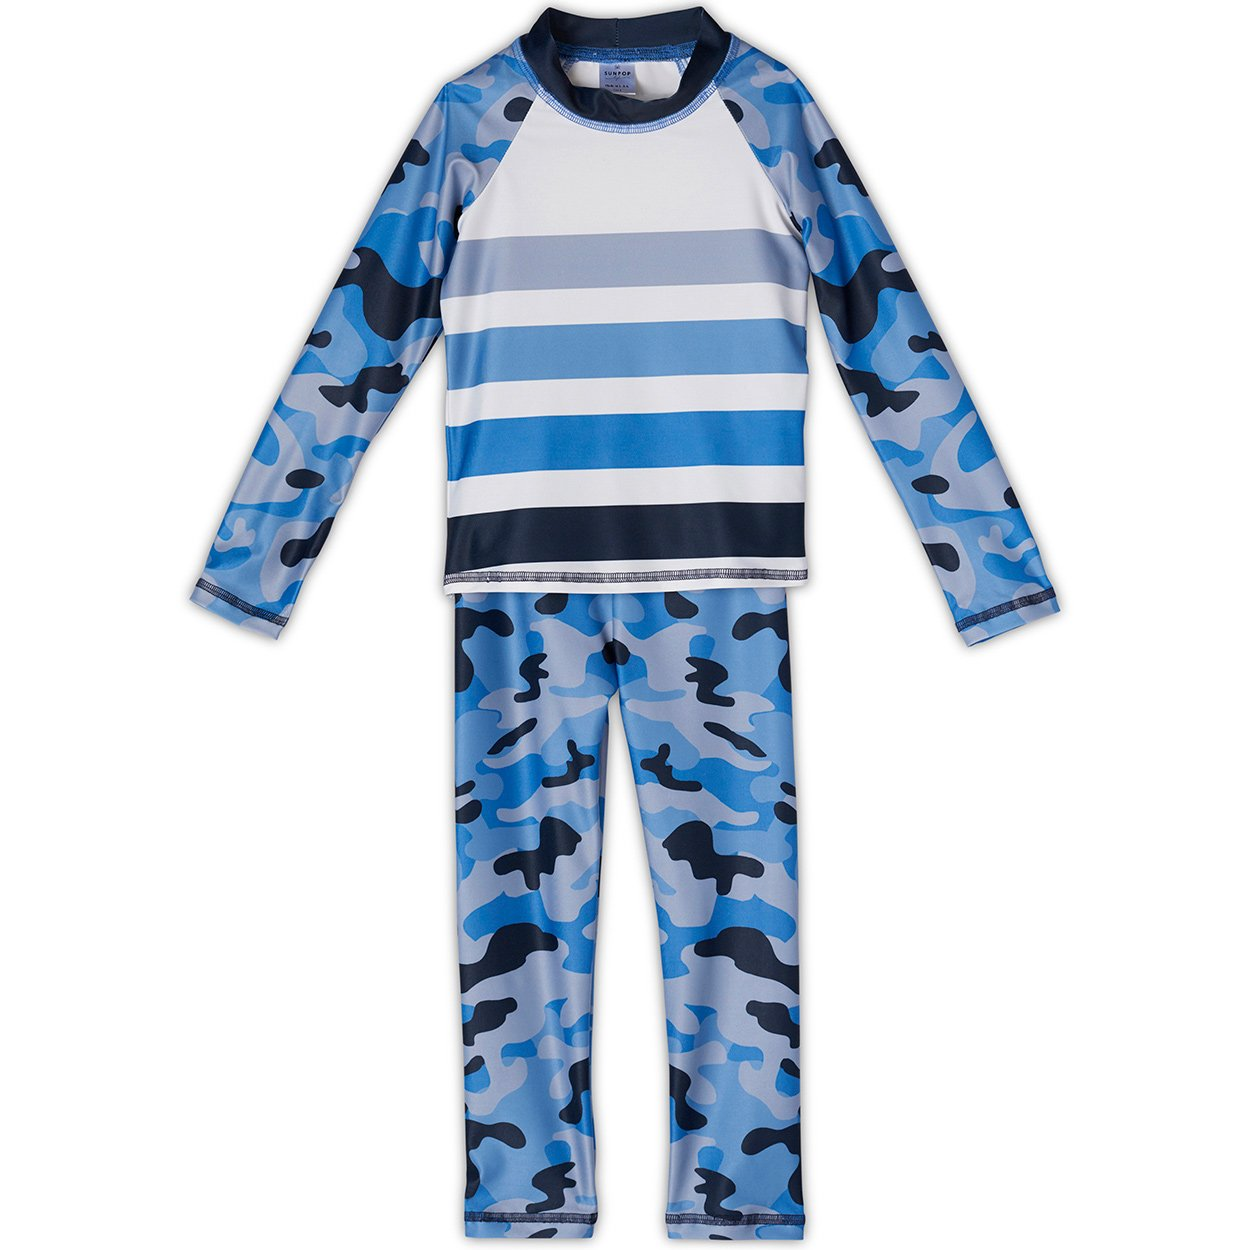 Blue Camo 2-pc Rash Guard Set UPF 50+ for Boys